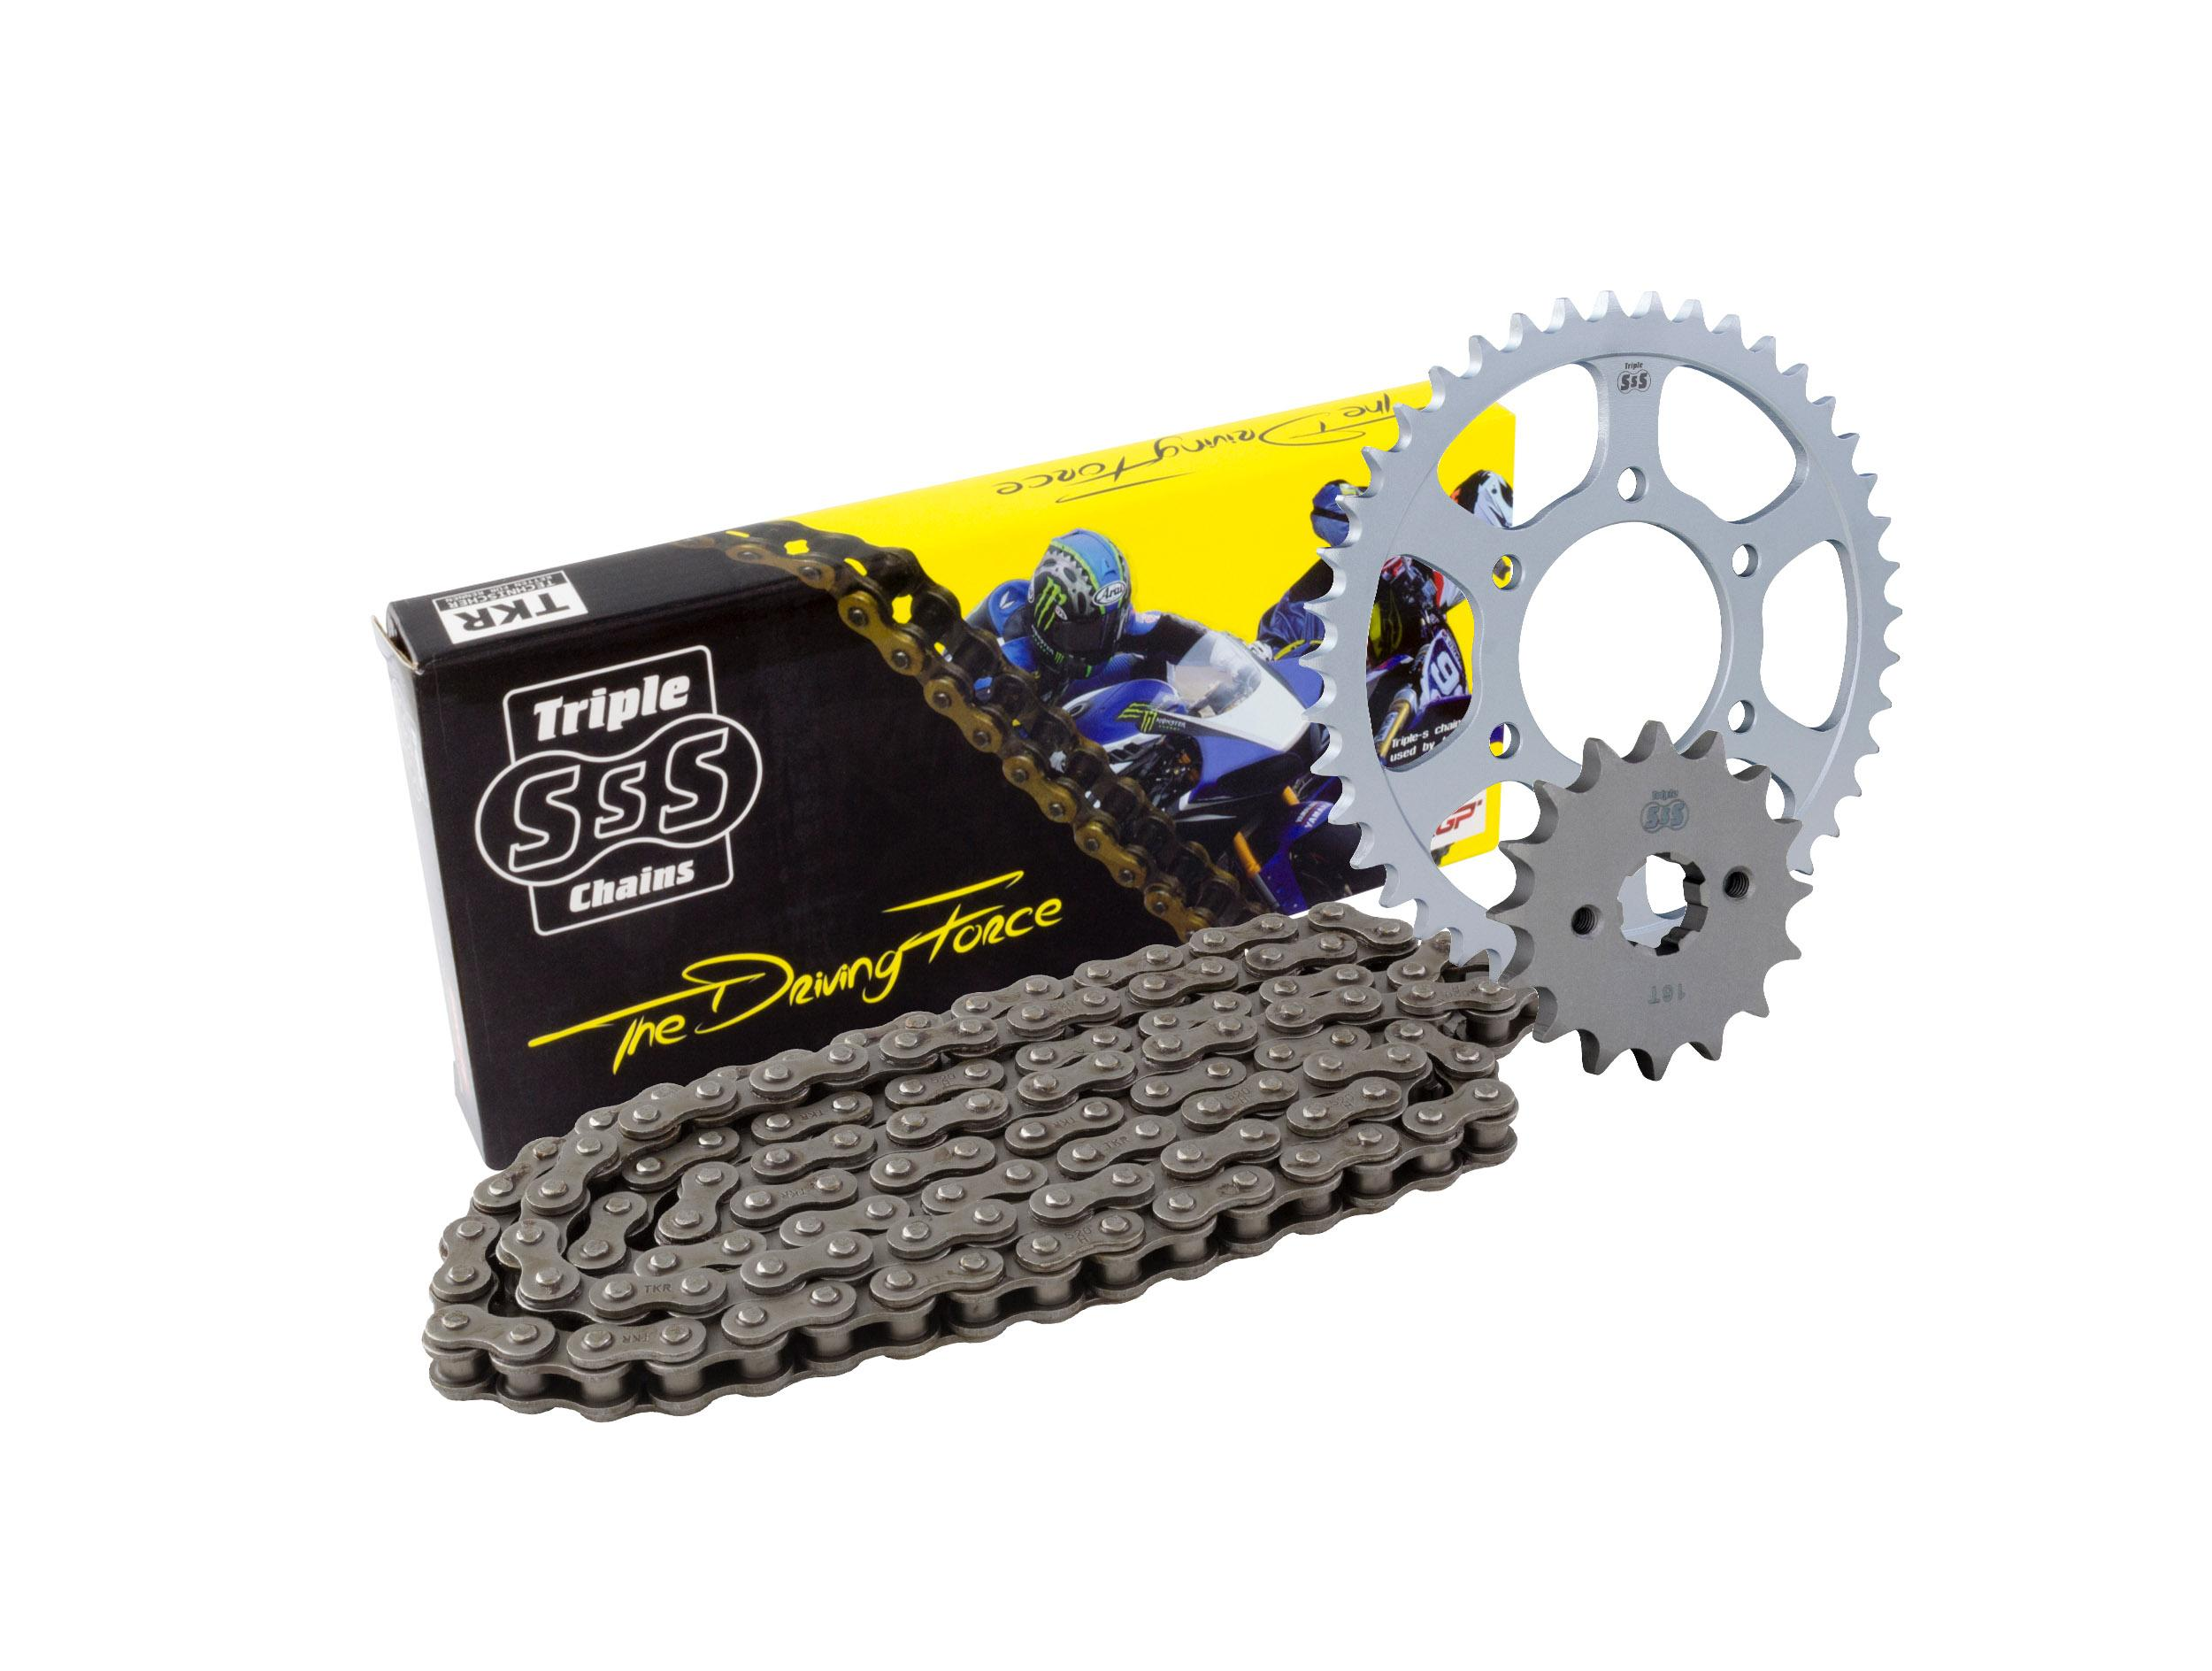 Yamaha TW200 12> Chain & Sprocket Kit: 14T Front, 50T Rear, HD Chain 428H 122 Link